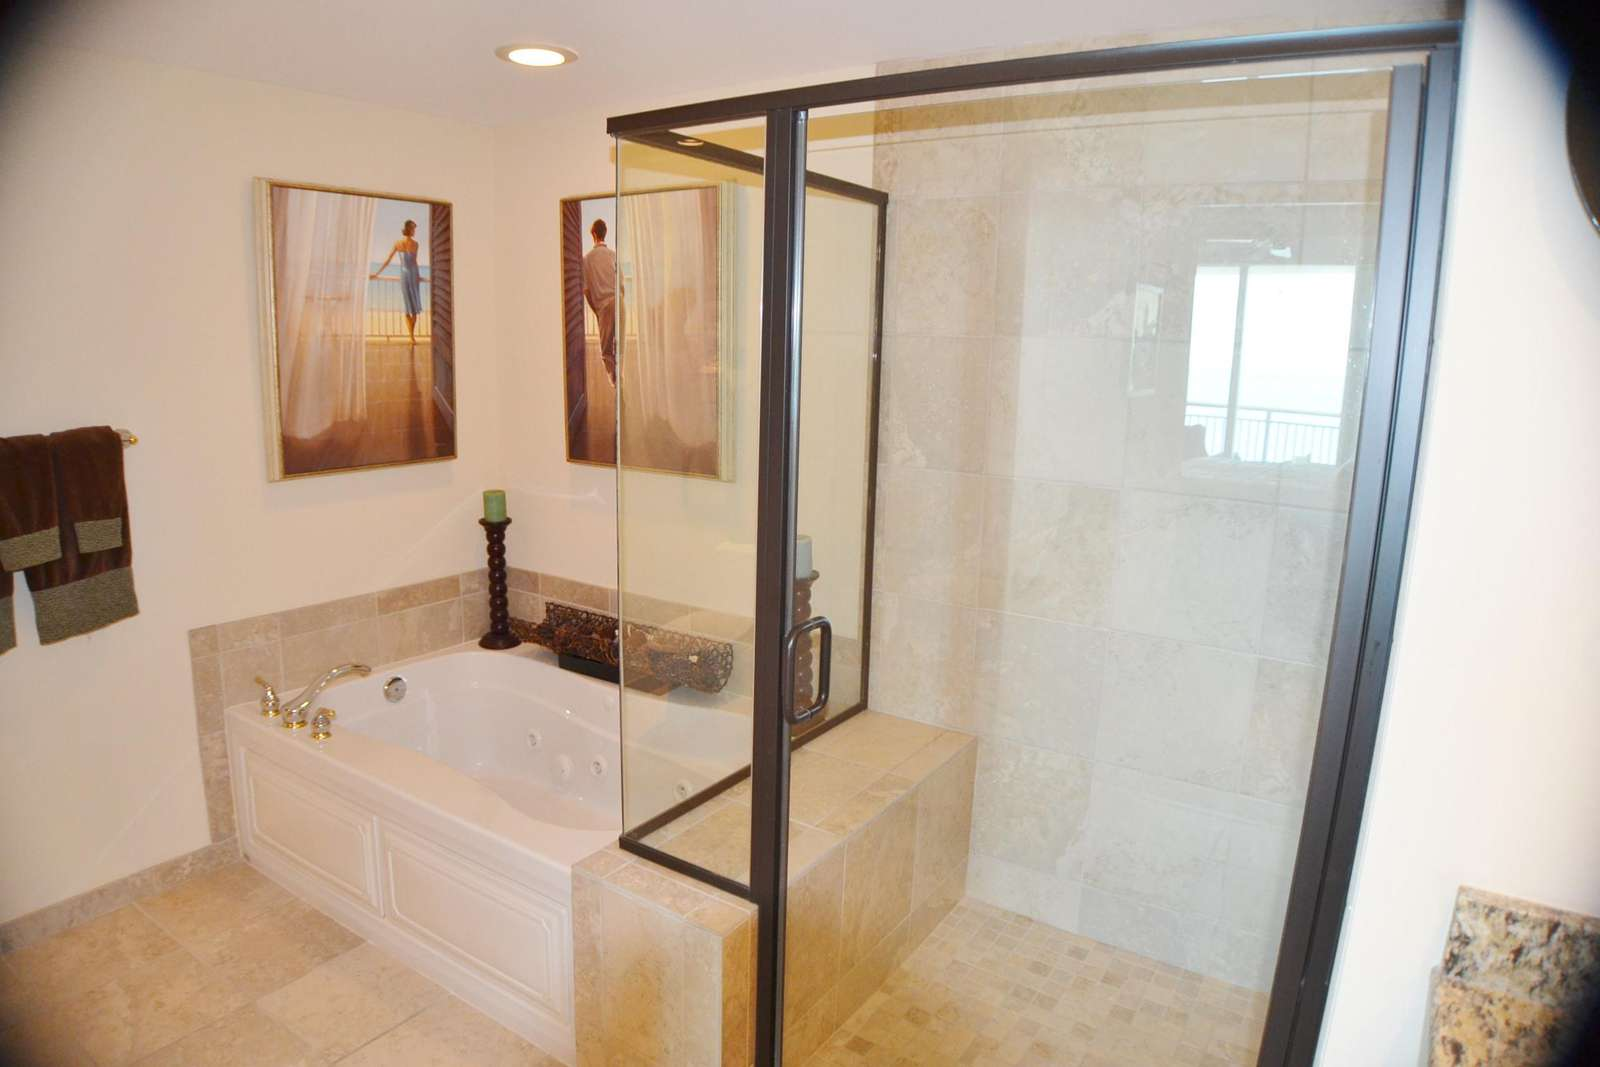 Ceramic tiled, walk in shower with seat, whirlpool tub